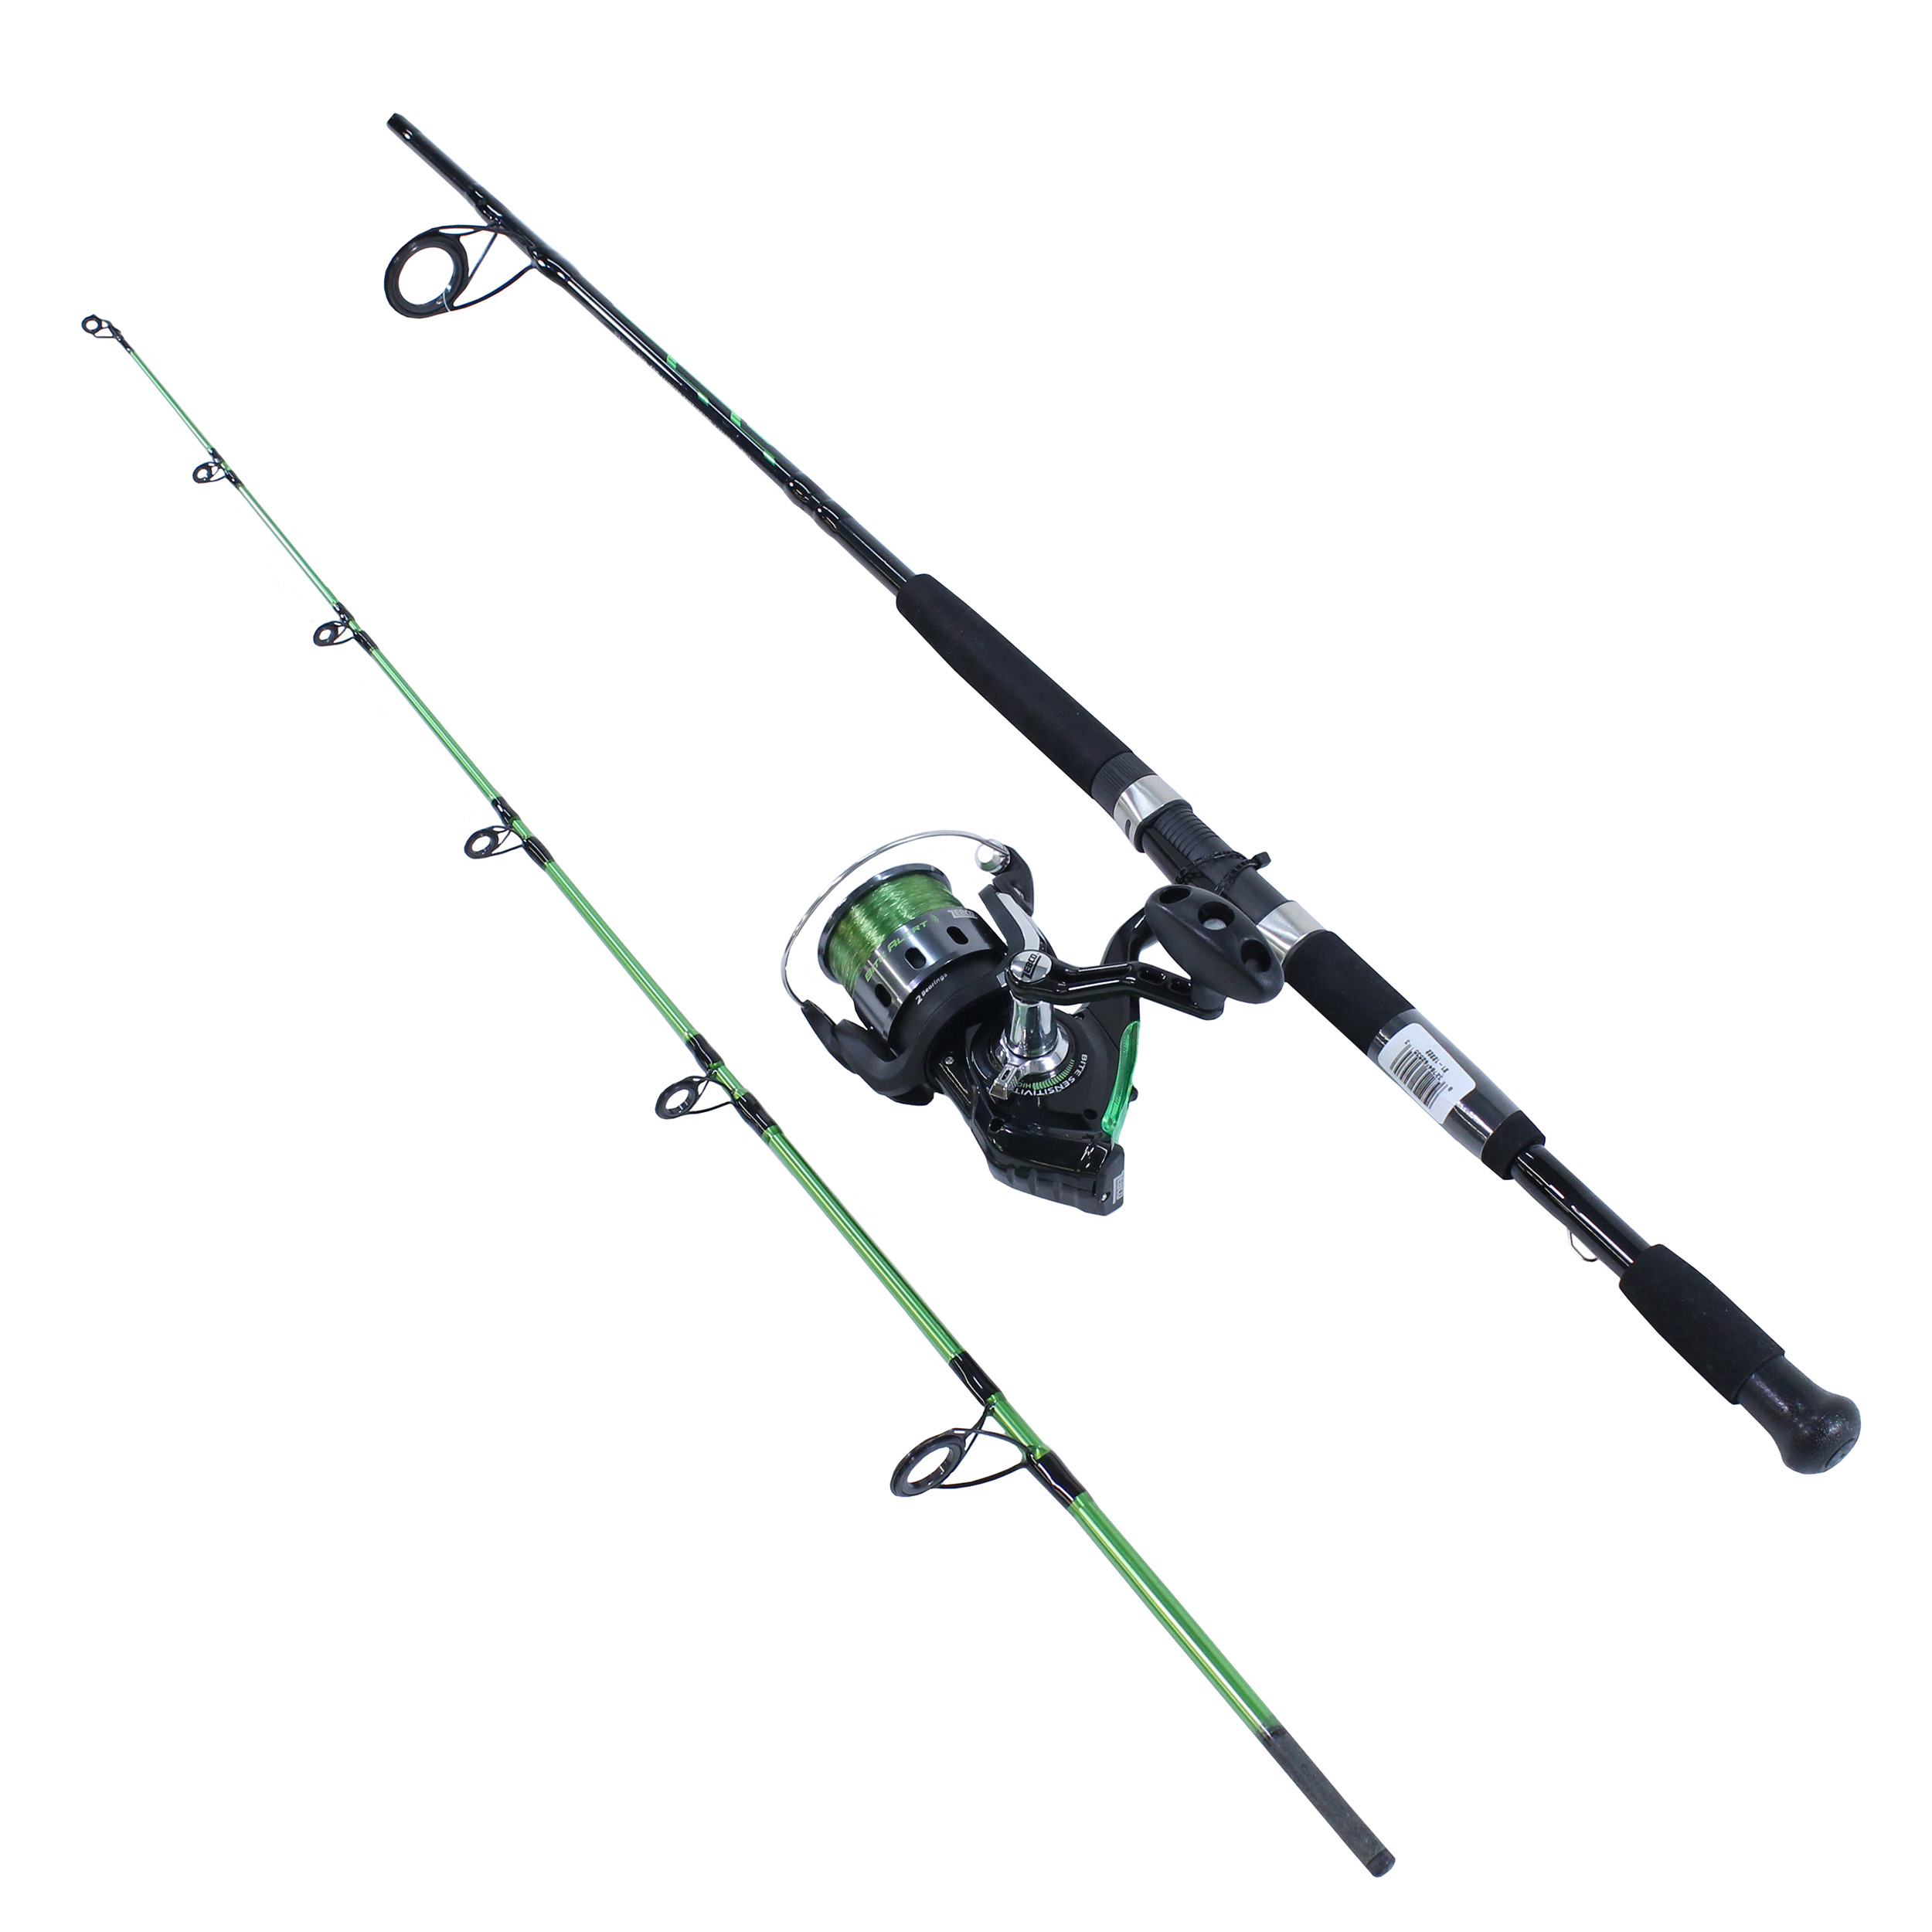 Zebco / Quantum Bite Alert Spinning Combo, 4.9:1 Gear Ratio, 7' 2pc Rod, 17-50 lb Line Rating